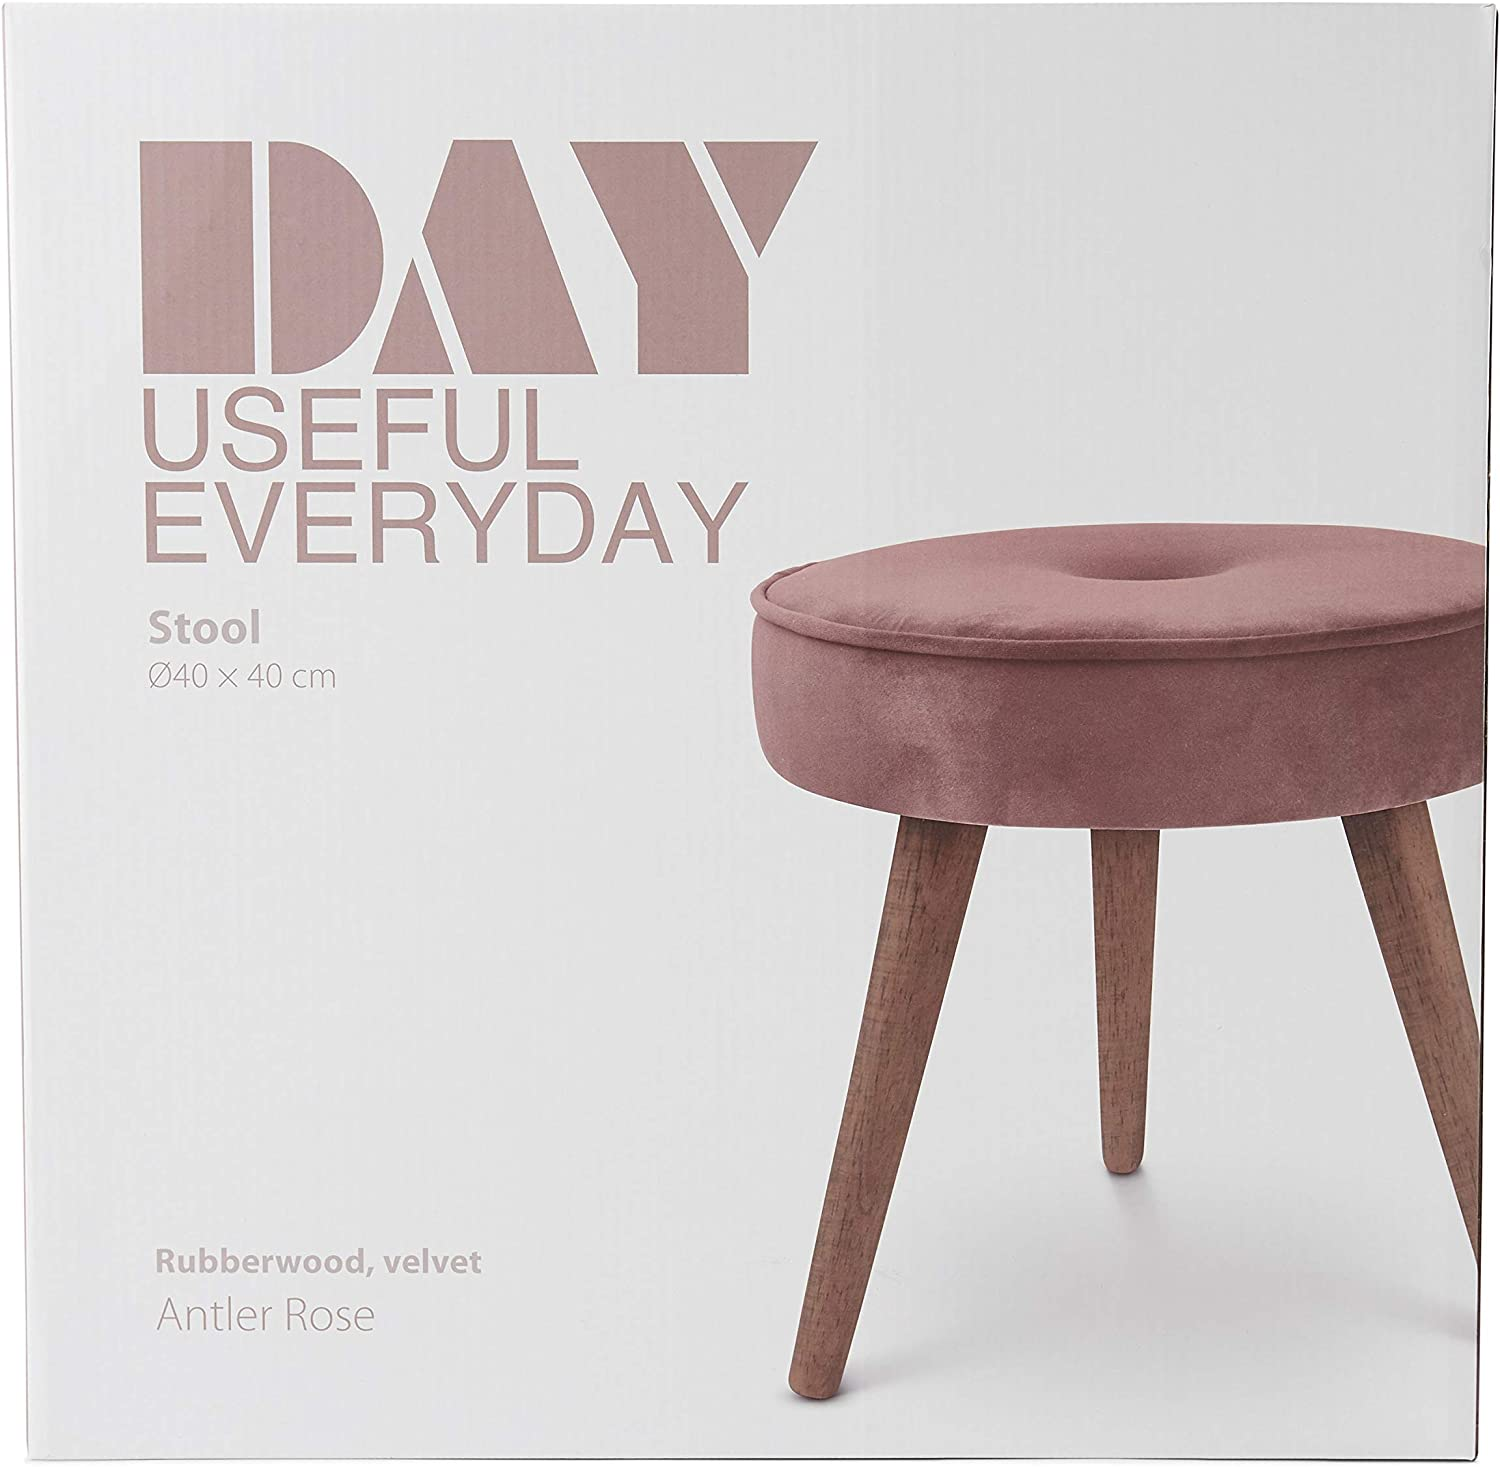 DAY USEFUL EVERYDAY Stool Chair Dressing Table Vanity Stool Scandinavian Design Polyester Max Load 120 kg Pink Diameter 40 cm x 40 cm